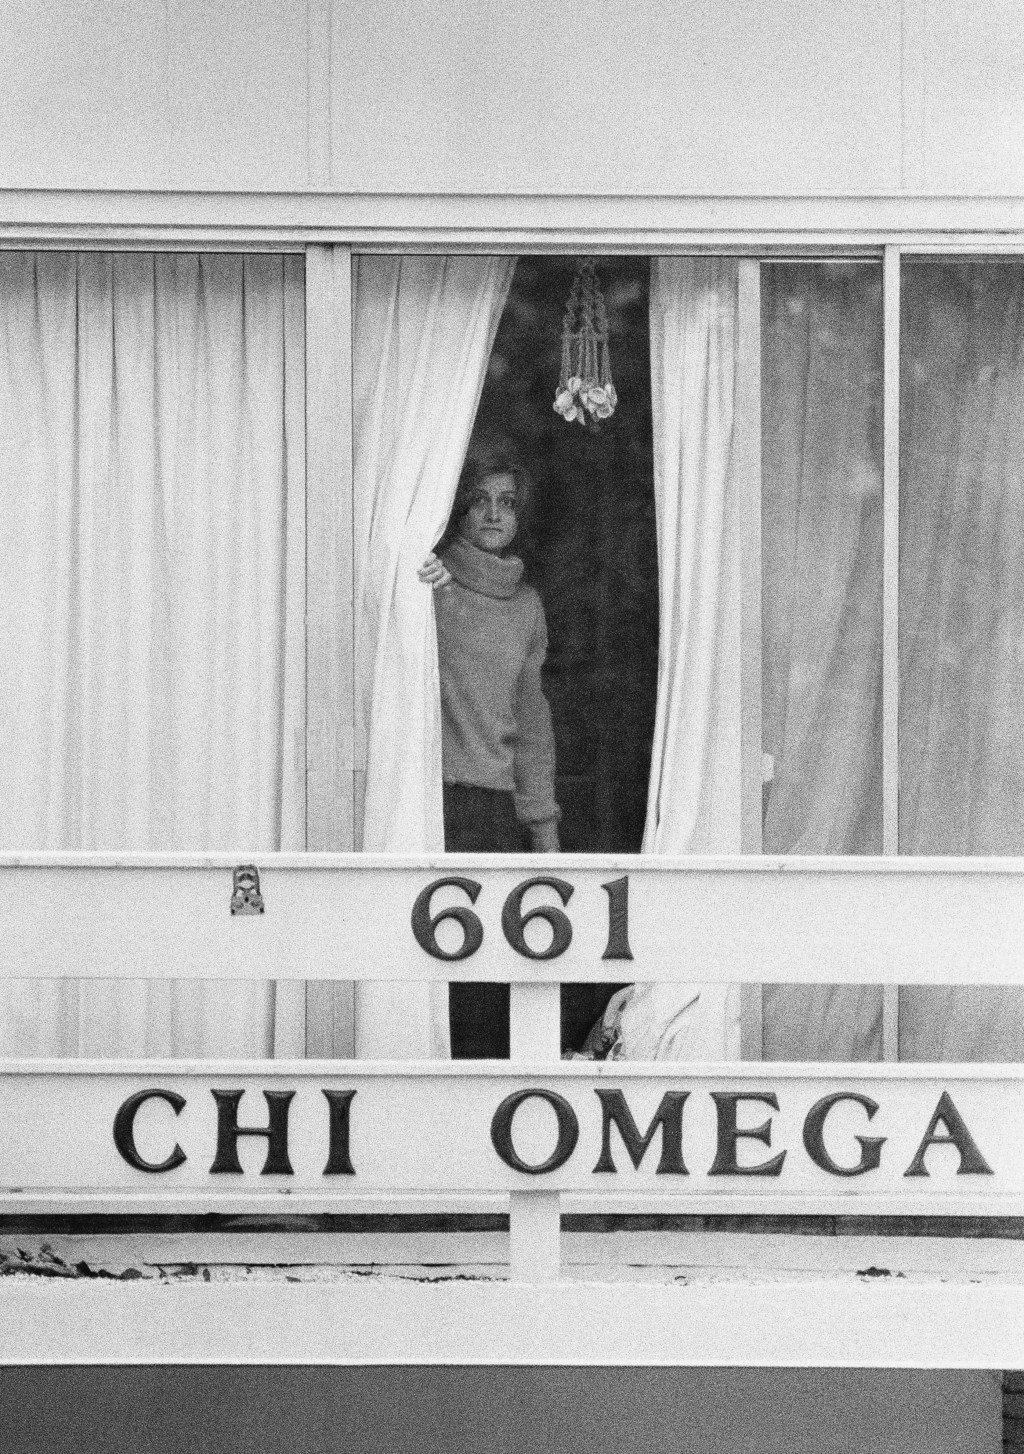 FILE - In this Jan. 15, 1978 file photo, an unidentified woman peers through drapes on the second story balcony of the Chi Omega sorority house at Flo